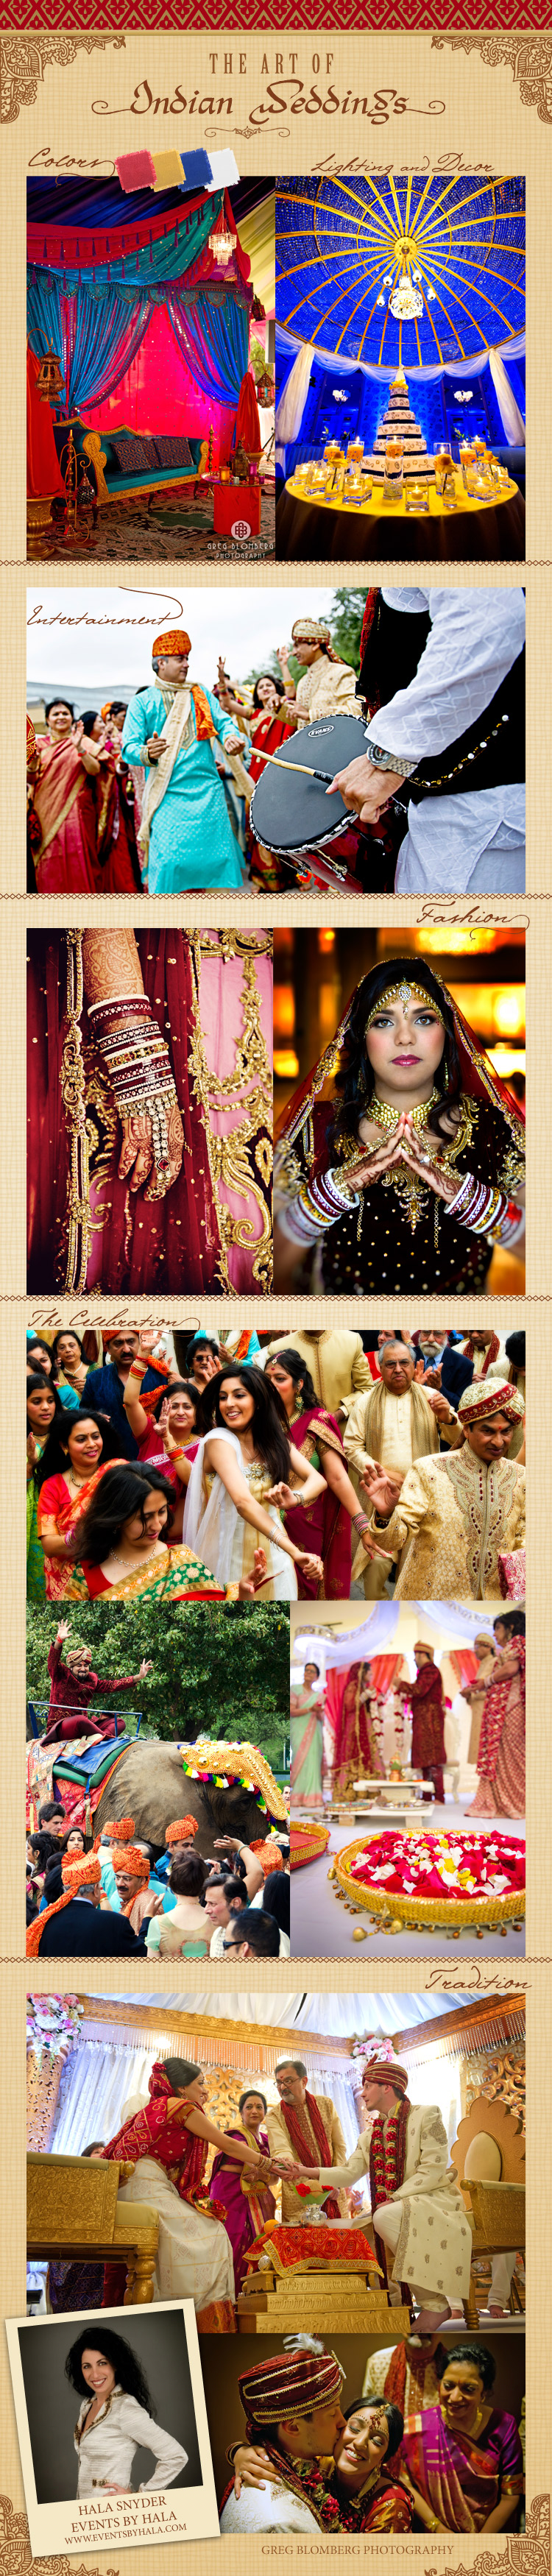 Dallas Fort Worth wedding planner Events by Hala: Indian Weddings